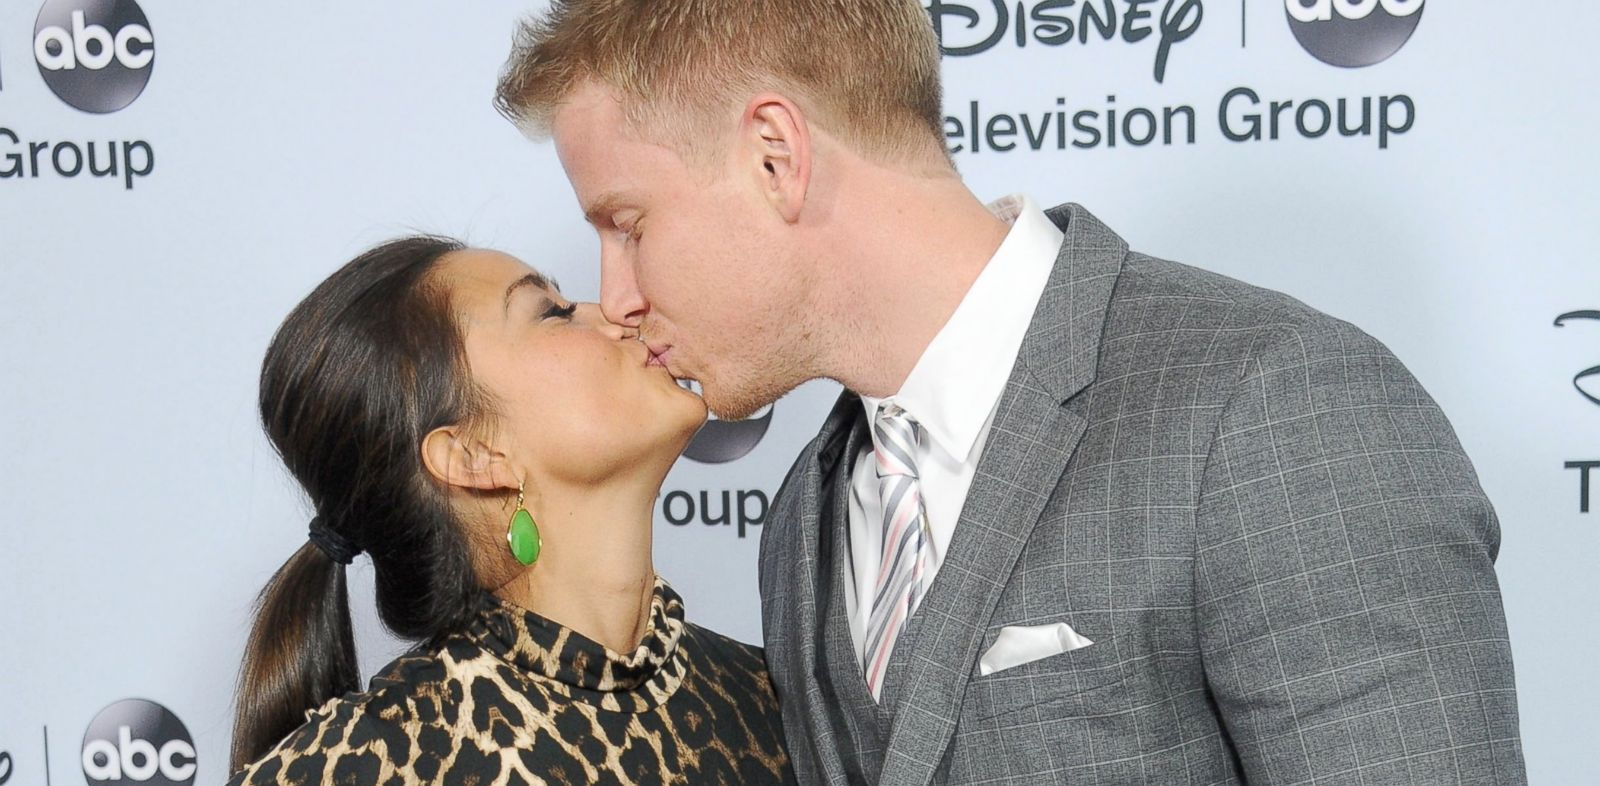 PHOTO: Sean Lowe and Catherine Giudici arrive at the ABC/Disney TCA Winter Press Tour party at The Langham Huntington Hotel and Spa, Jan. 17, 2014, in Pasadena, Calif.